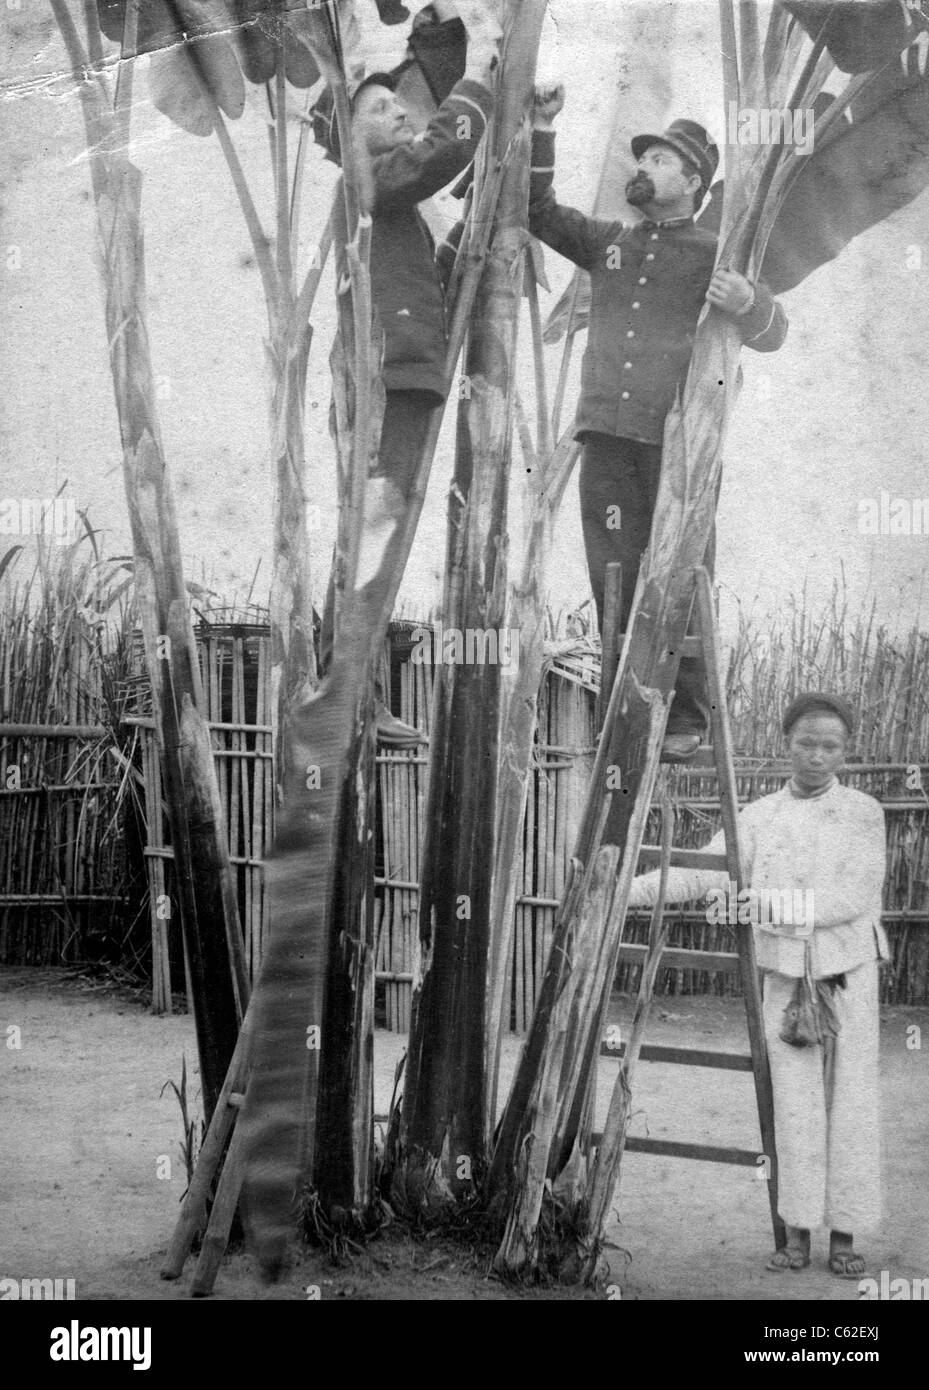 Two French soldiers work with a Vietnamese native holding the ladder for them in Vietnam or Cambodia circa 1900. - Stock Image